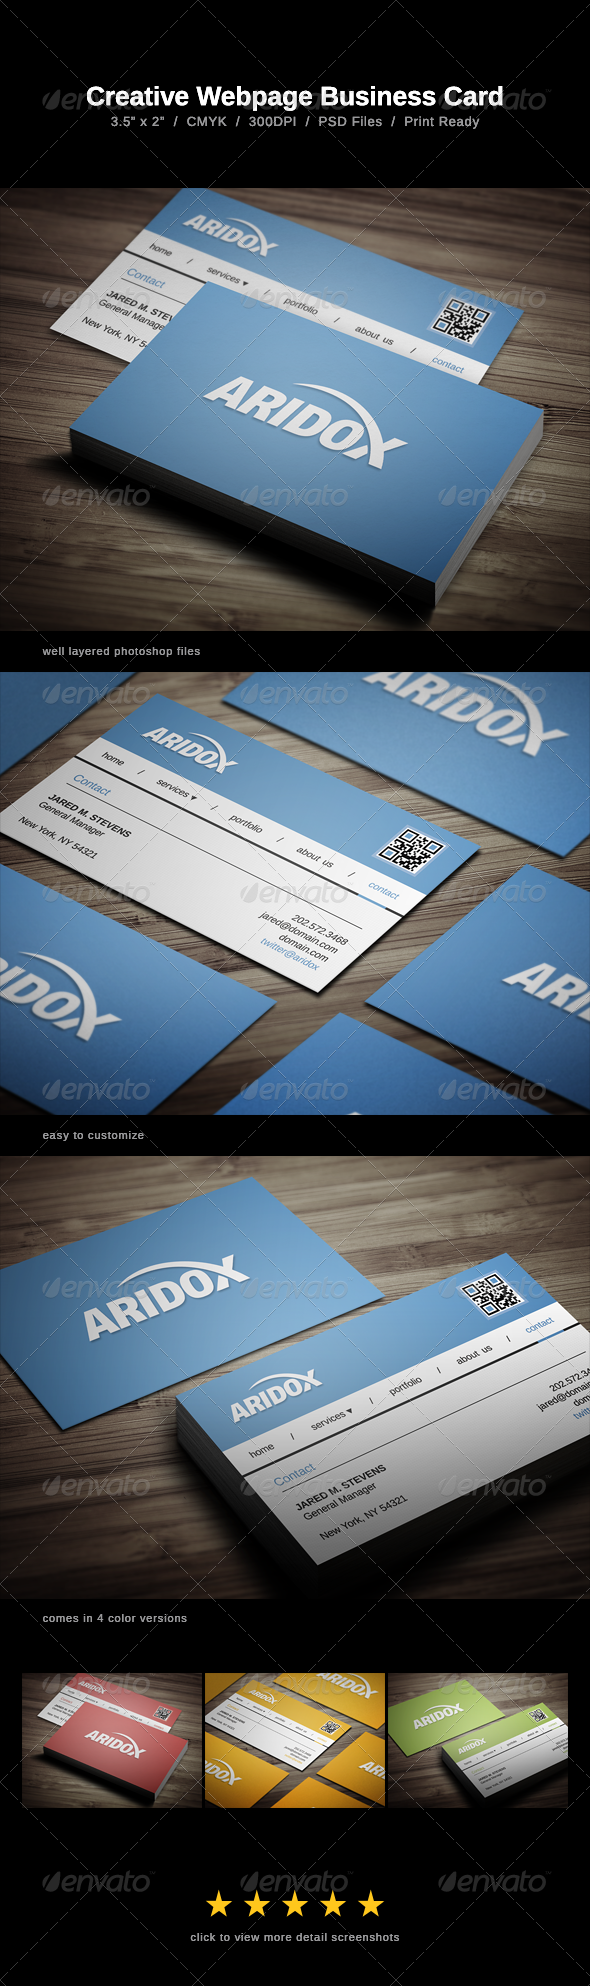 GraphicRiver Creative Webpage Business Card 6637957